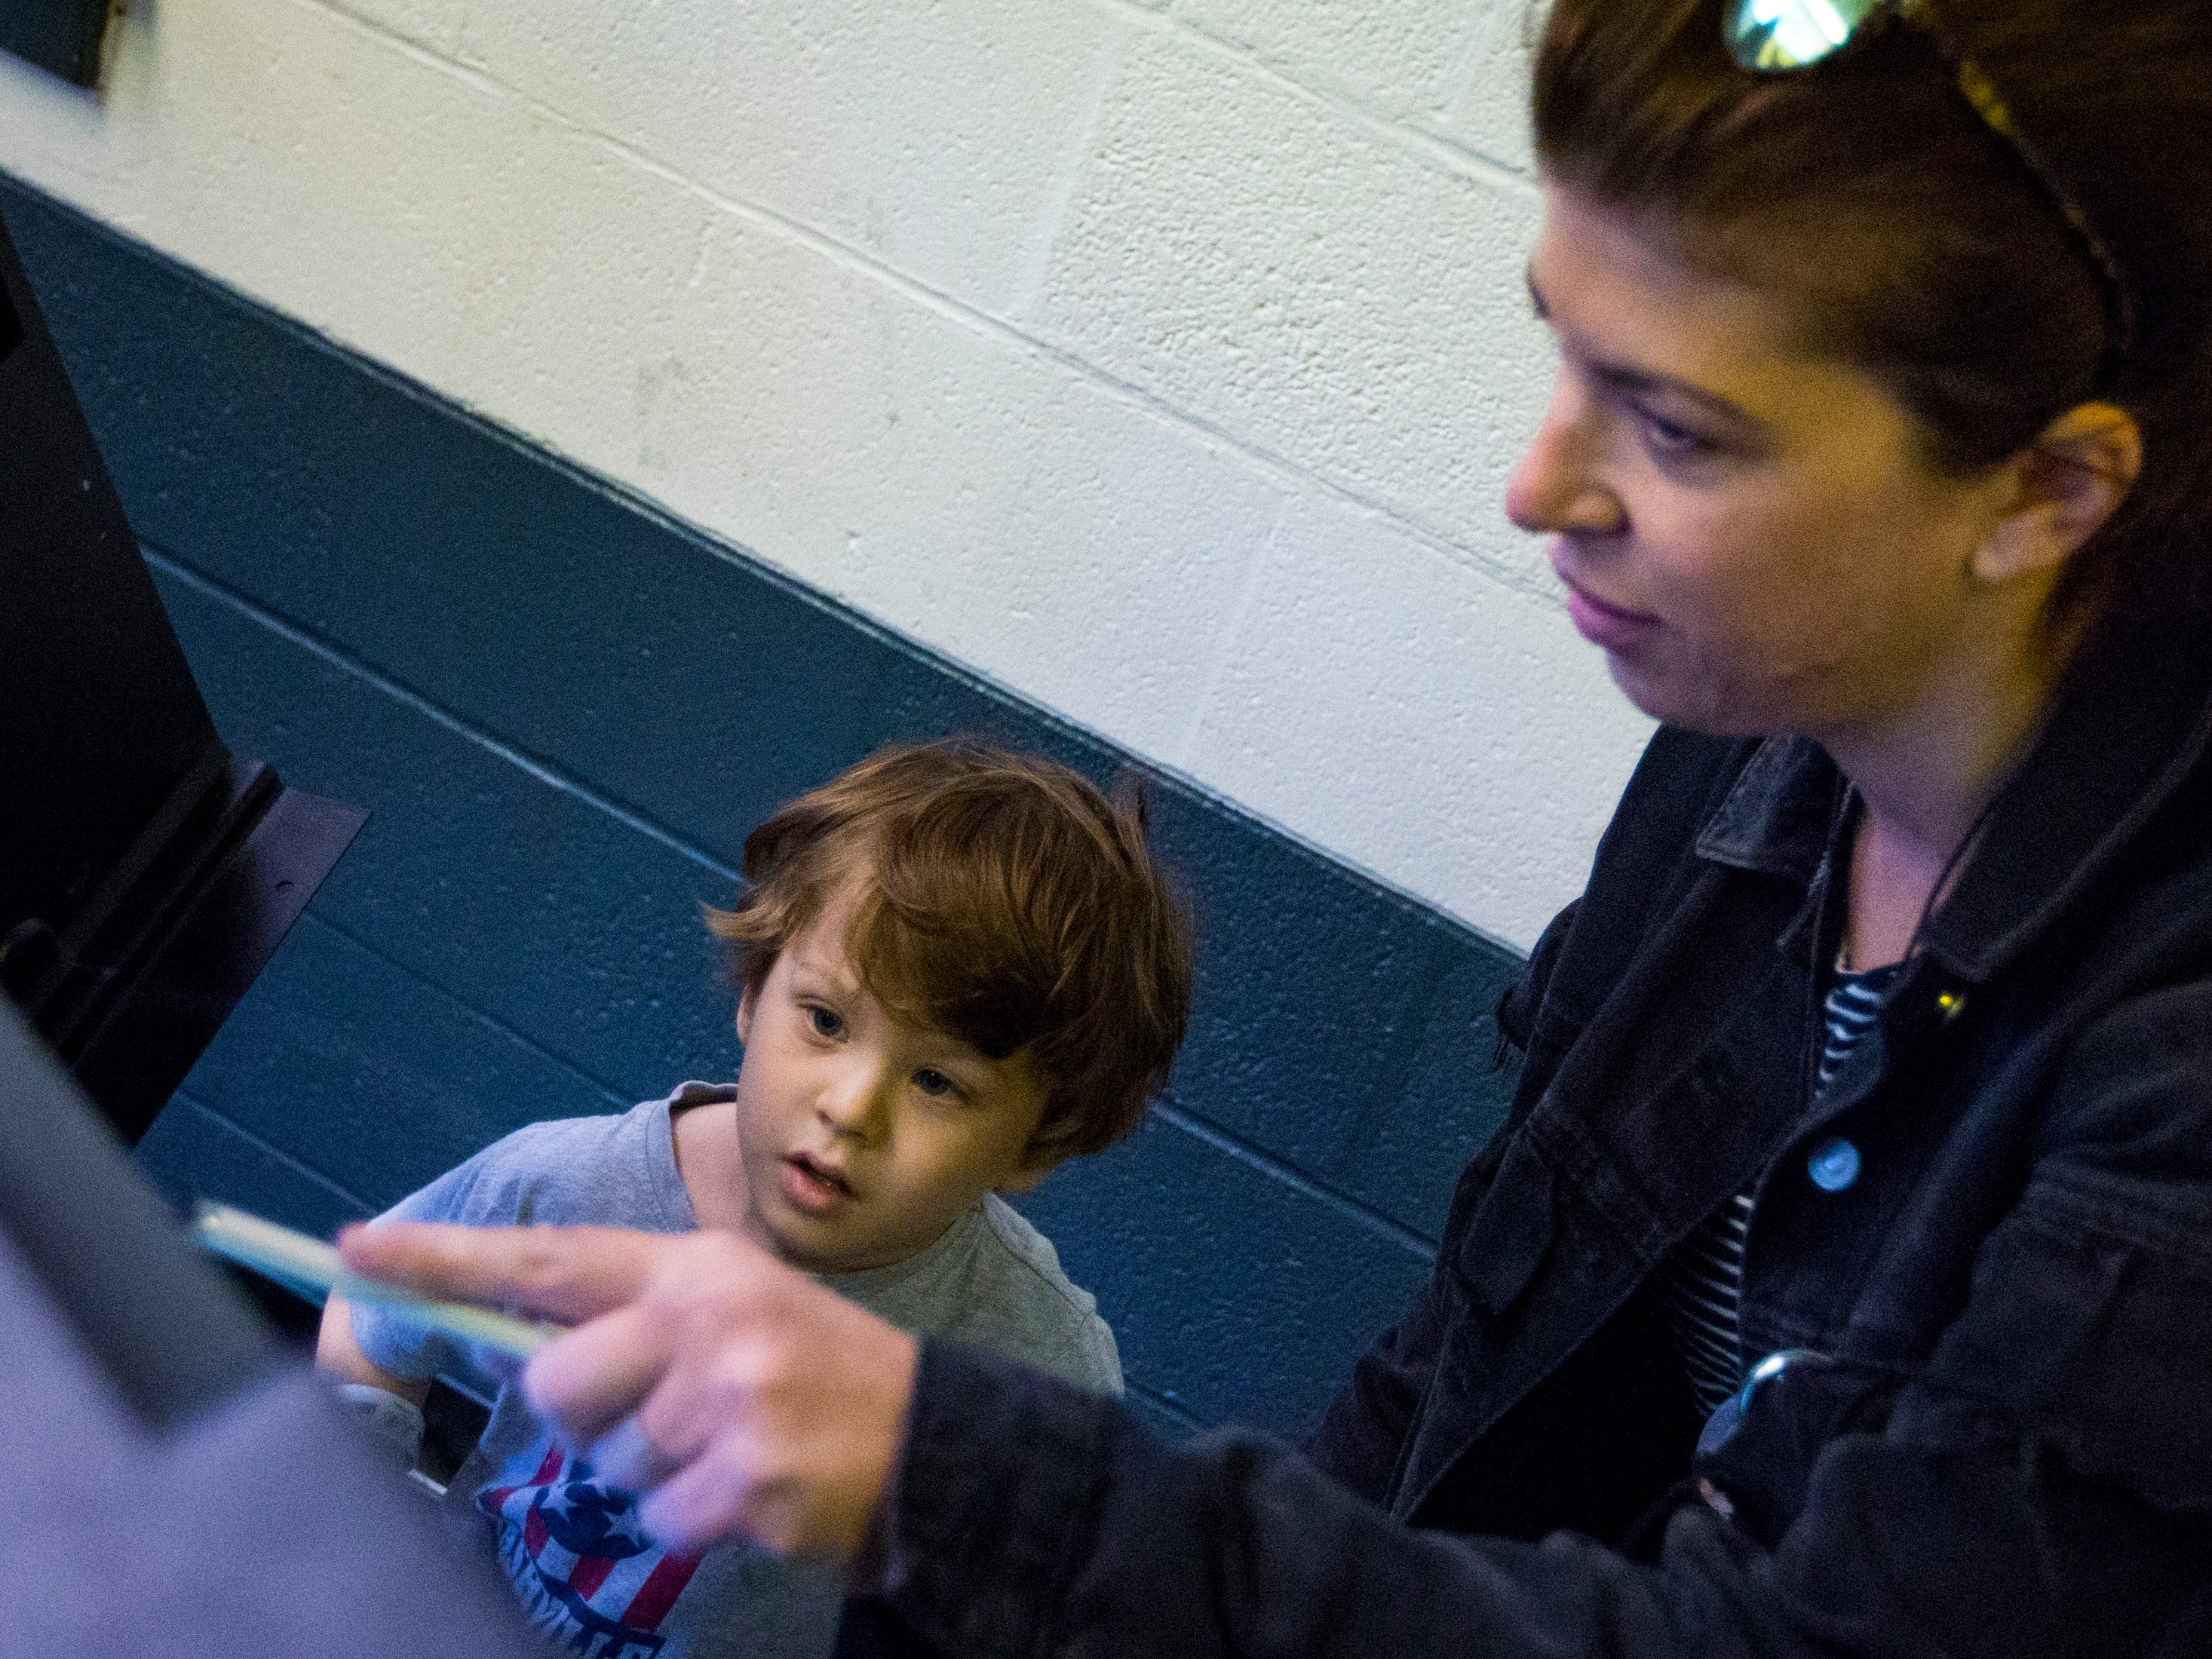 Stone Scheideman, 5, helps his mom, Marissa Moss vote at the Shelby Park Community Center in Nashville on Tuesday, Nov. 6, 2018.